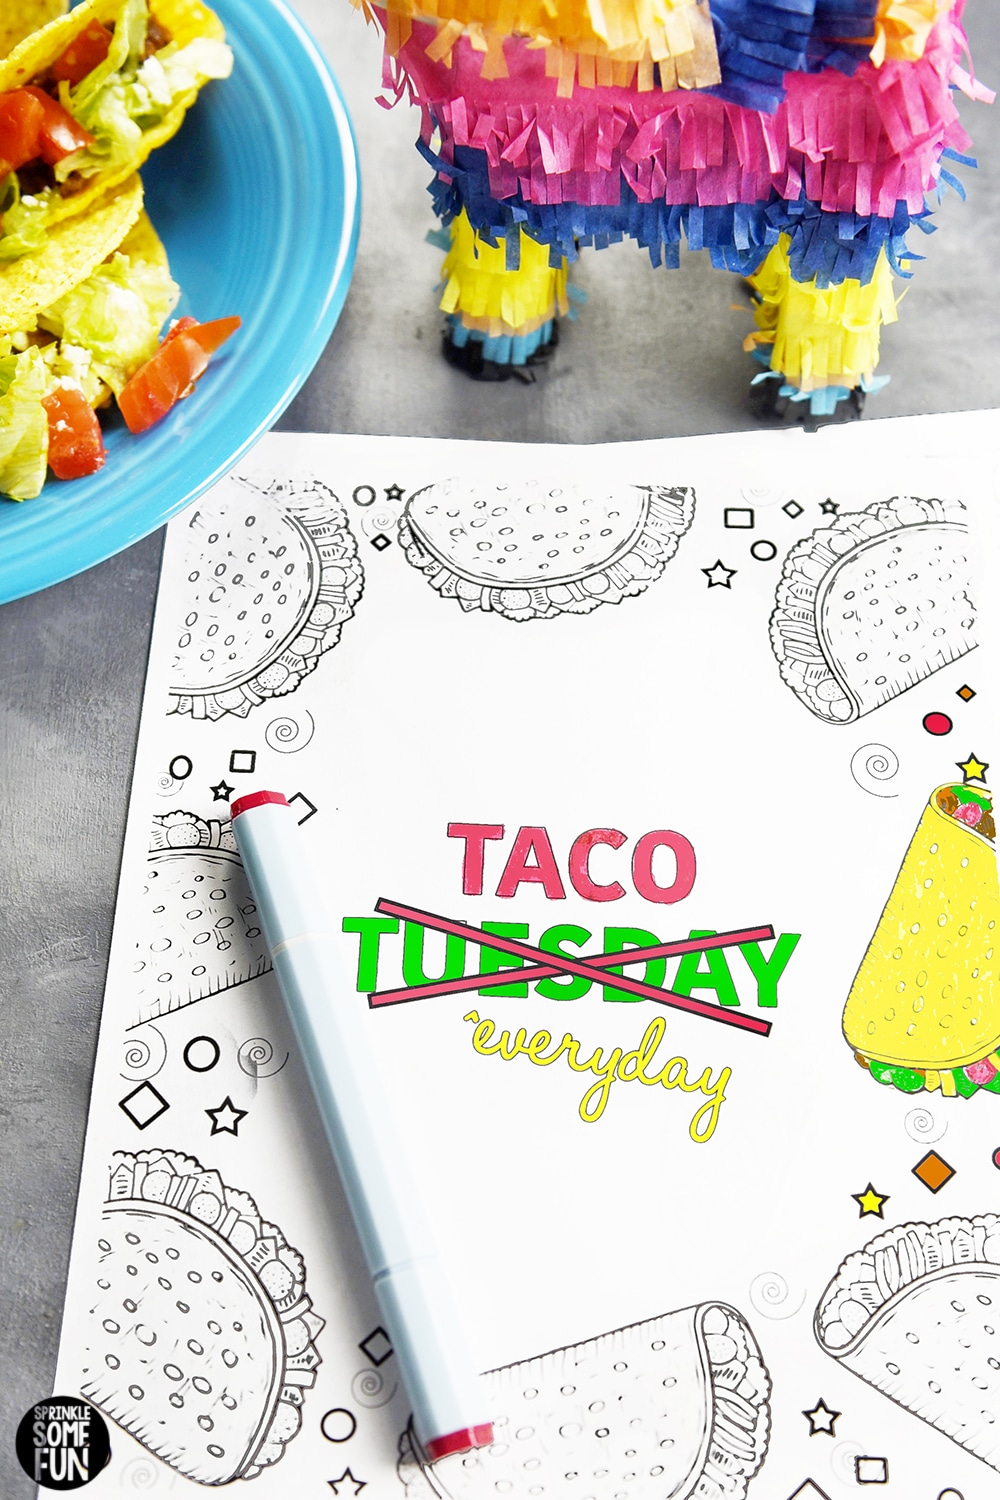 5 Free Funny Taco Quotes Coloring Pages Sprinkle Some Fun